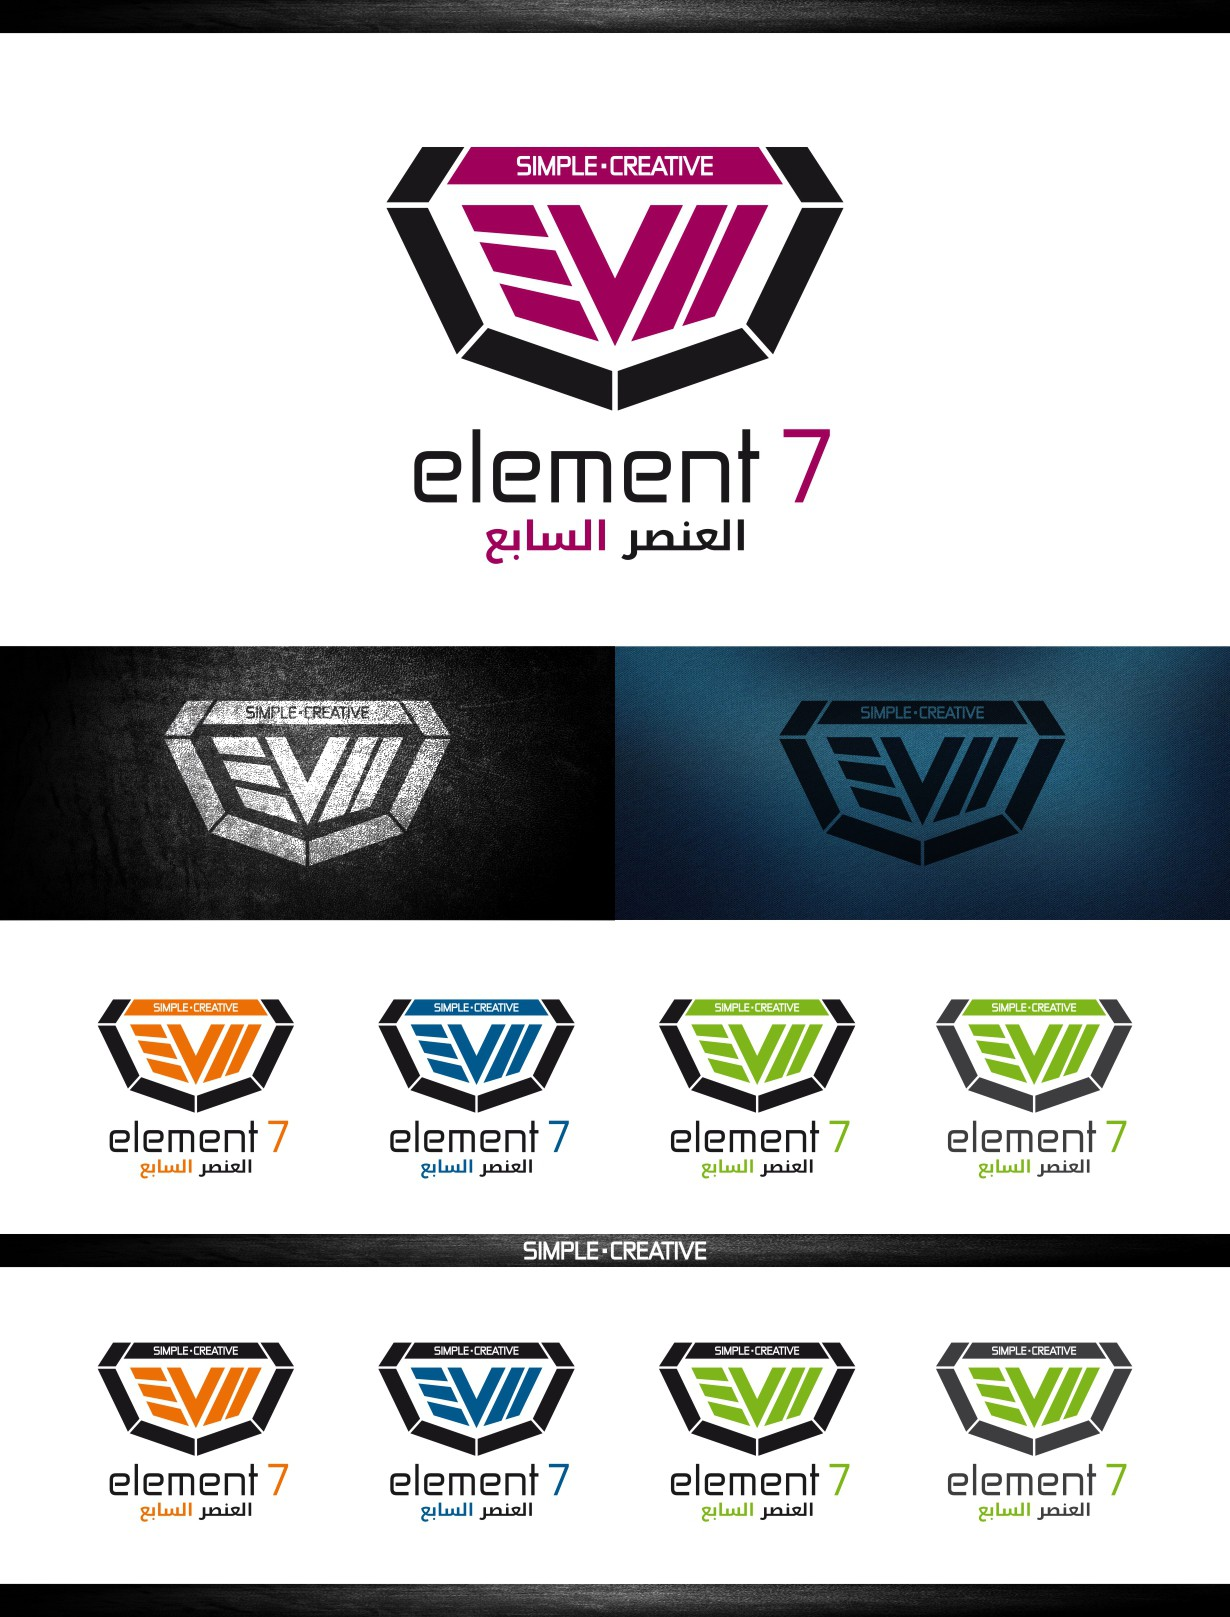 Help EVII (Stands for Element 7) with a new logo